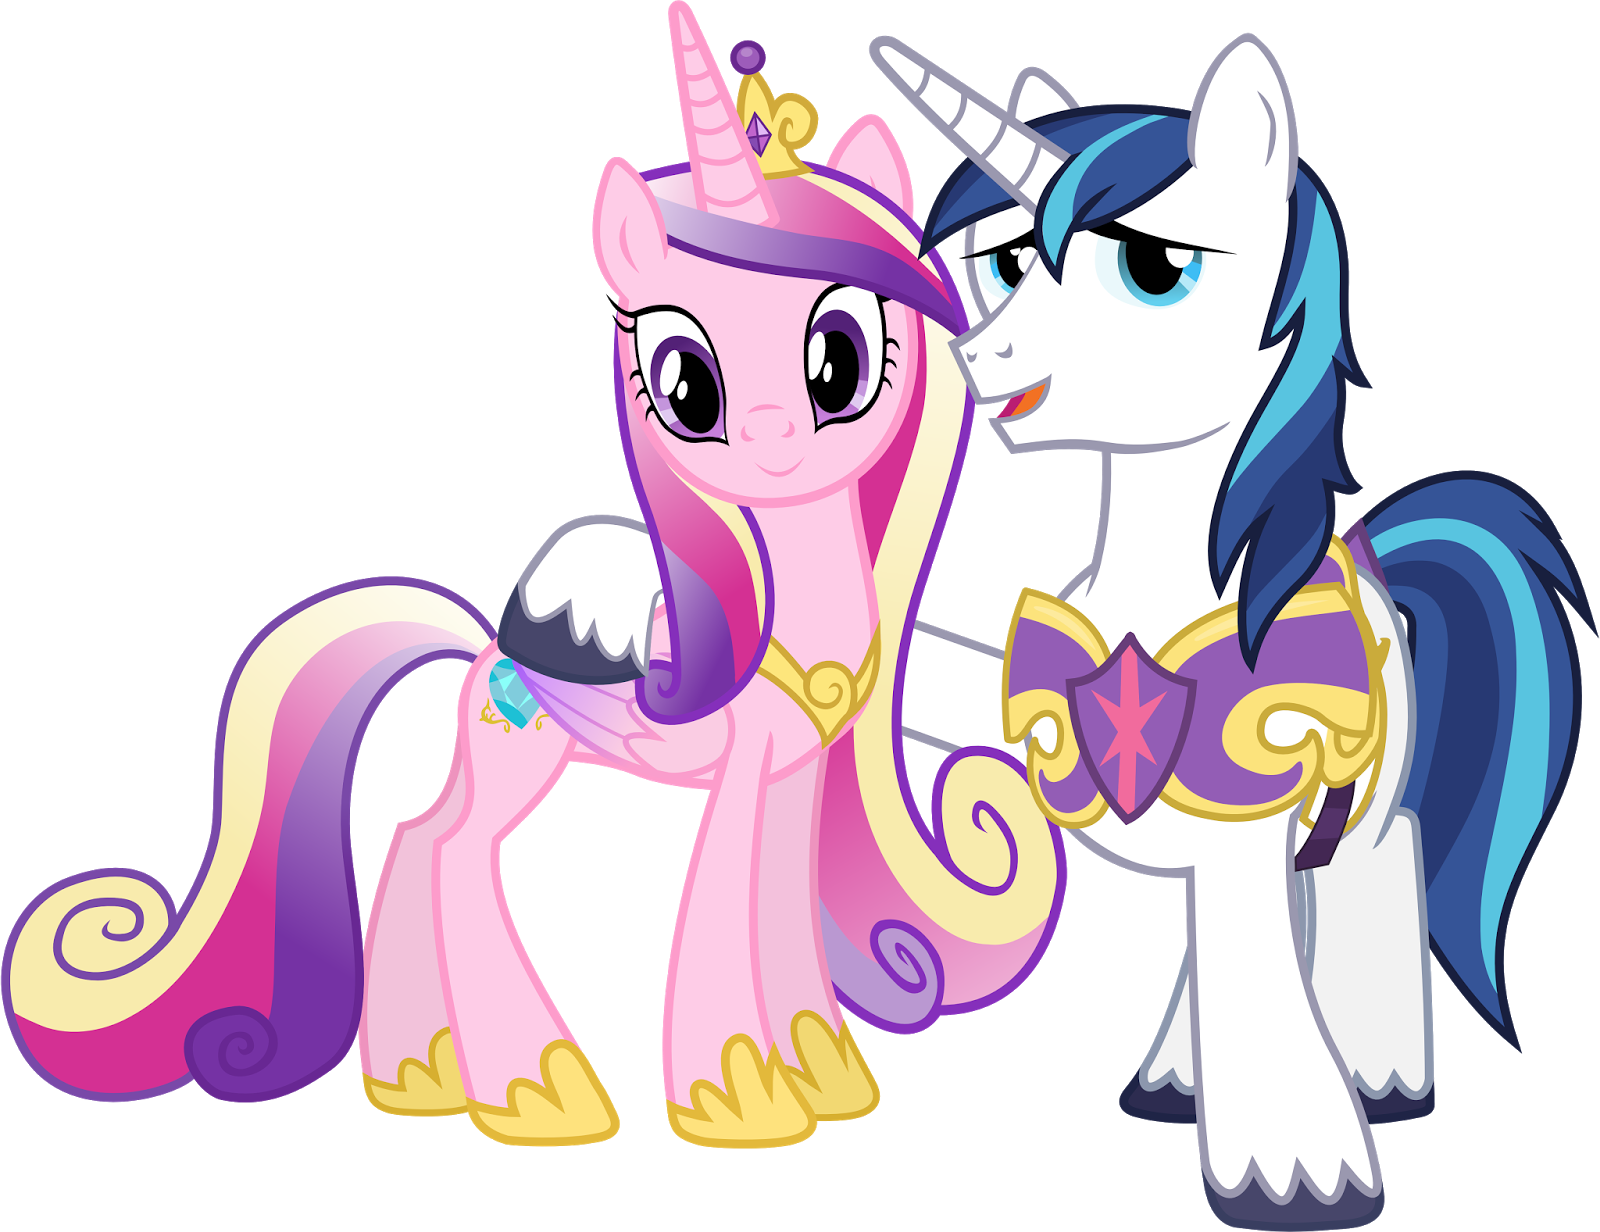 https://2.bp.blogspot.com/-KvydmJfLOaE/VbR9UwSCLkI/AAAAAAACWDA/jwHfEXVY98c/s1600/princess_cadance_and_shining_armour_by_90sigma-d4w3s2y.png How To Draw Princess Cadence And Shining Armor